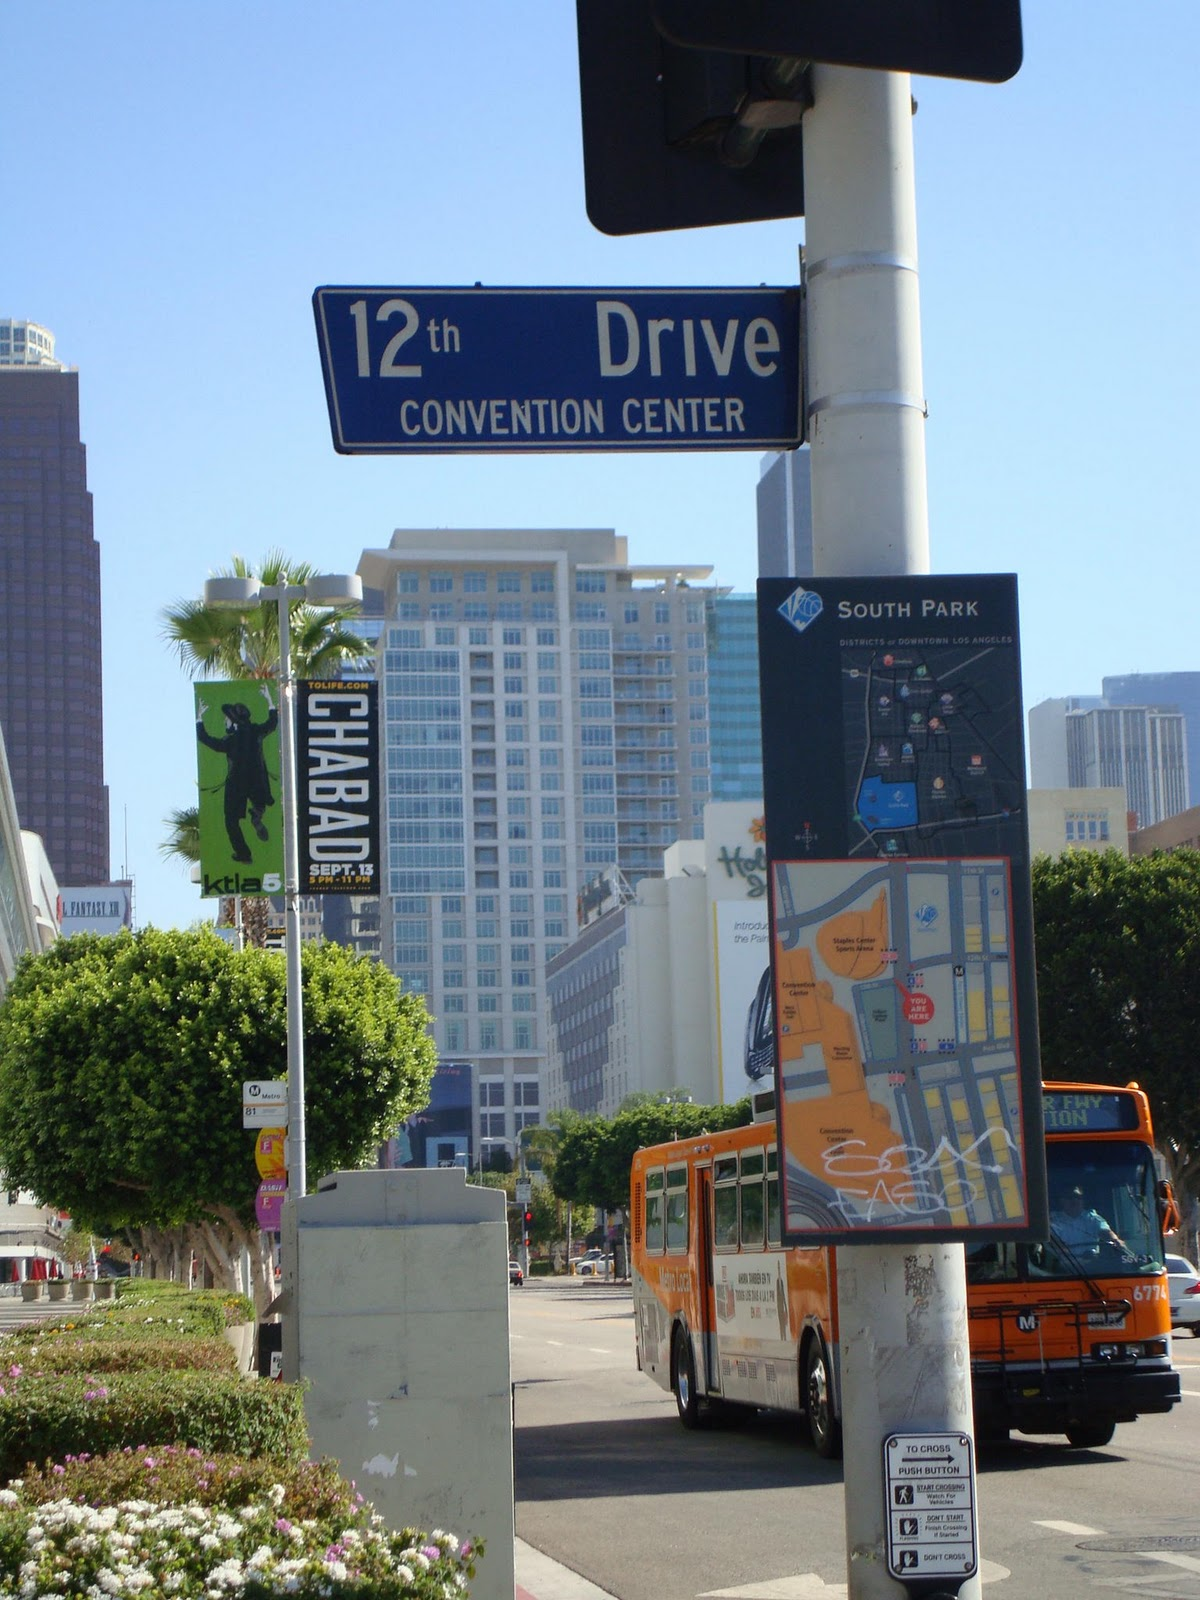 Los Angeles Revisited Before the Convention Center the Staples